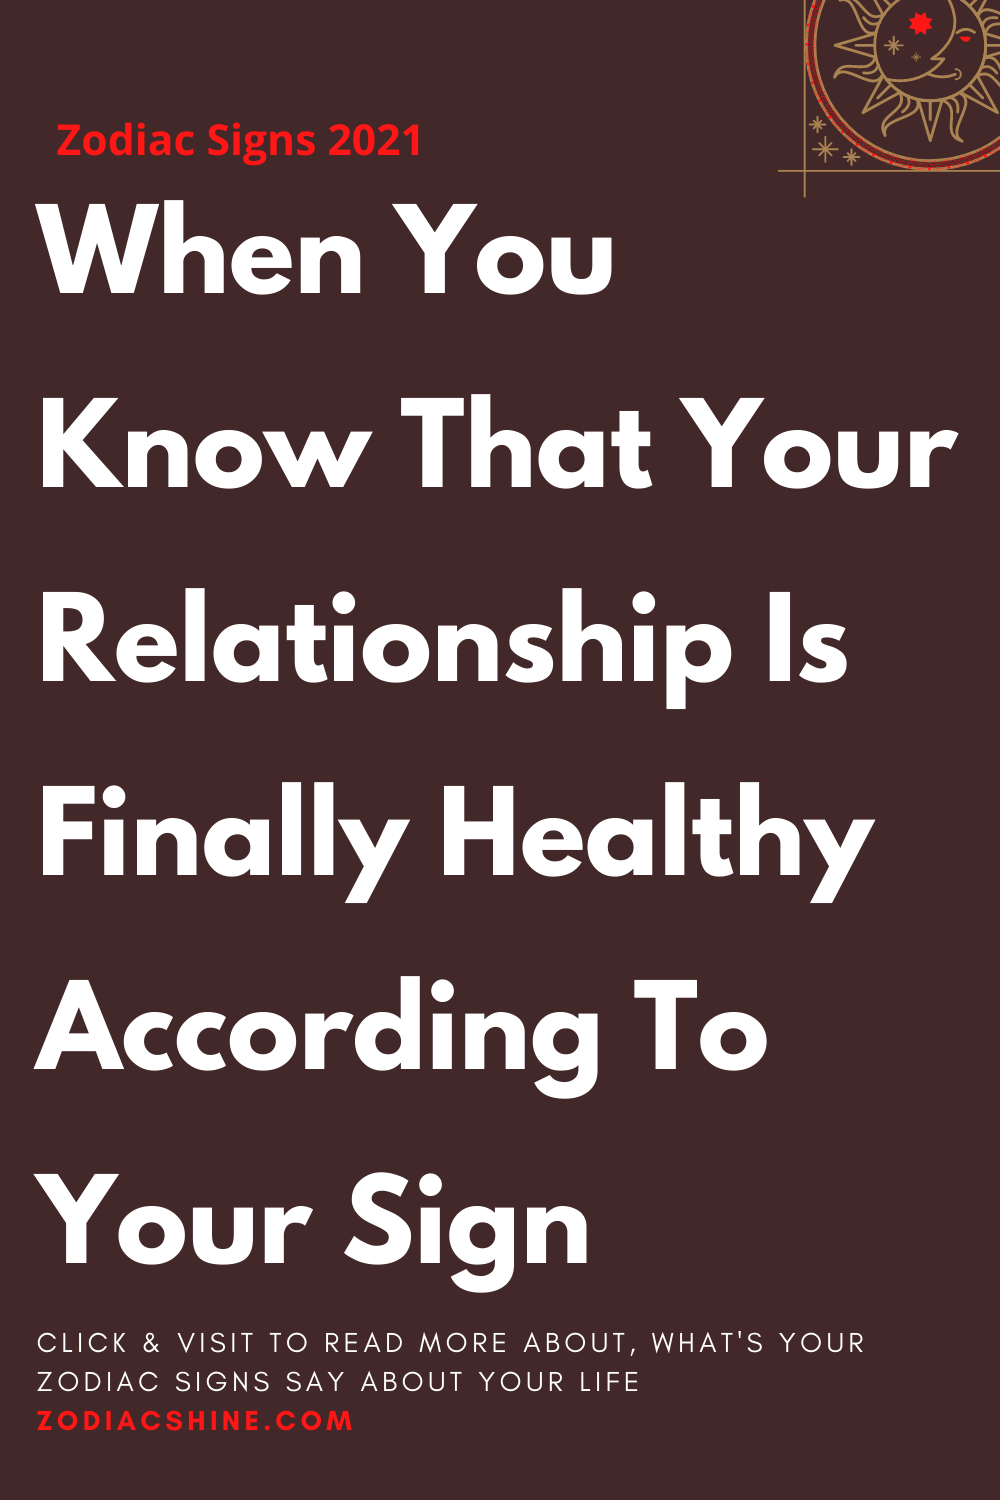 When You Know That Your Relationship Is Finally Healthy According To Your Sign